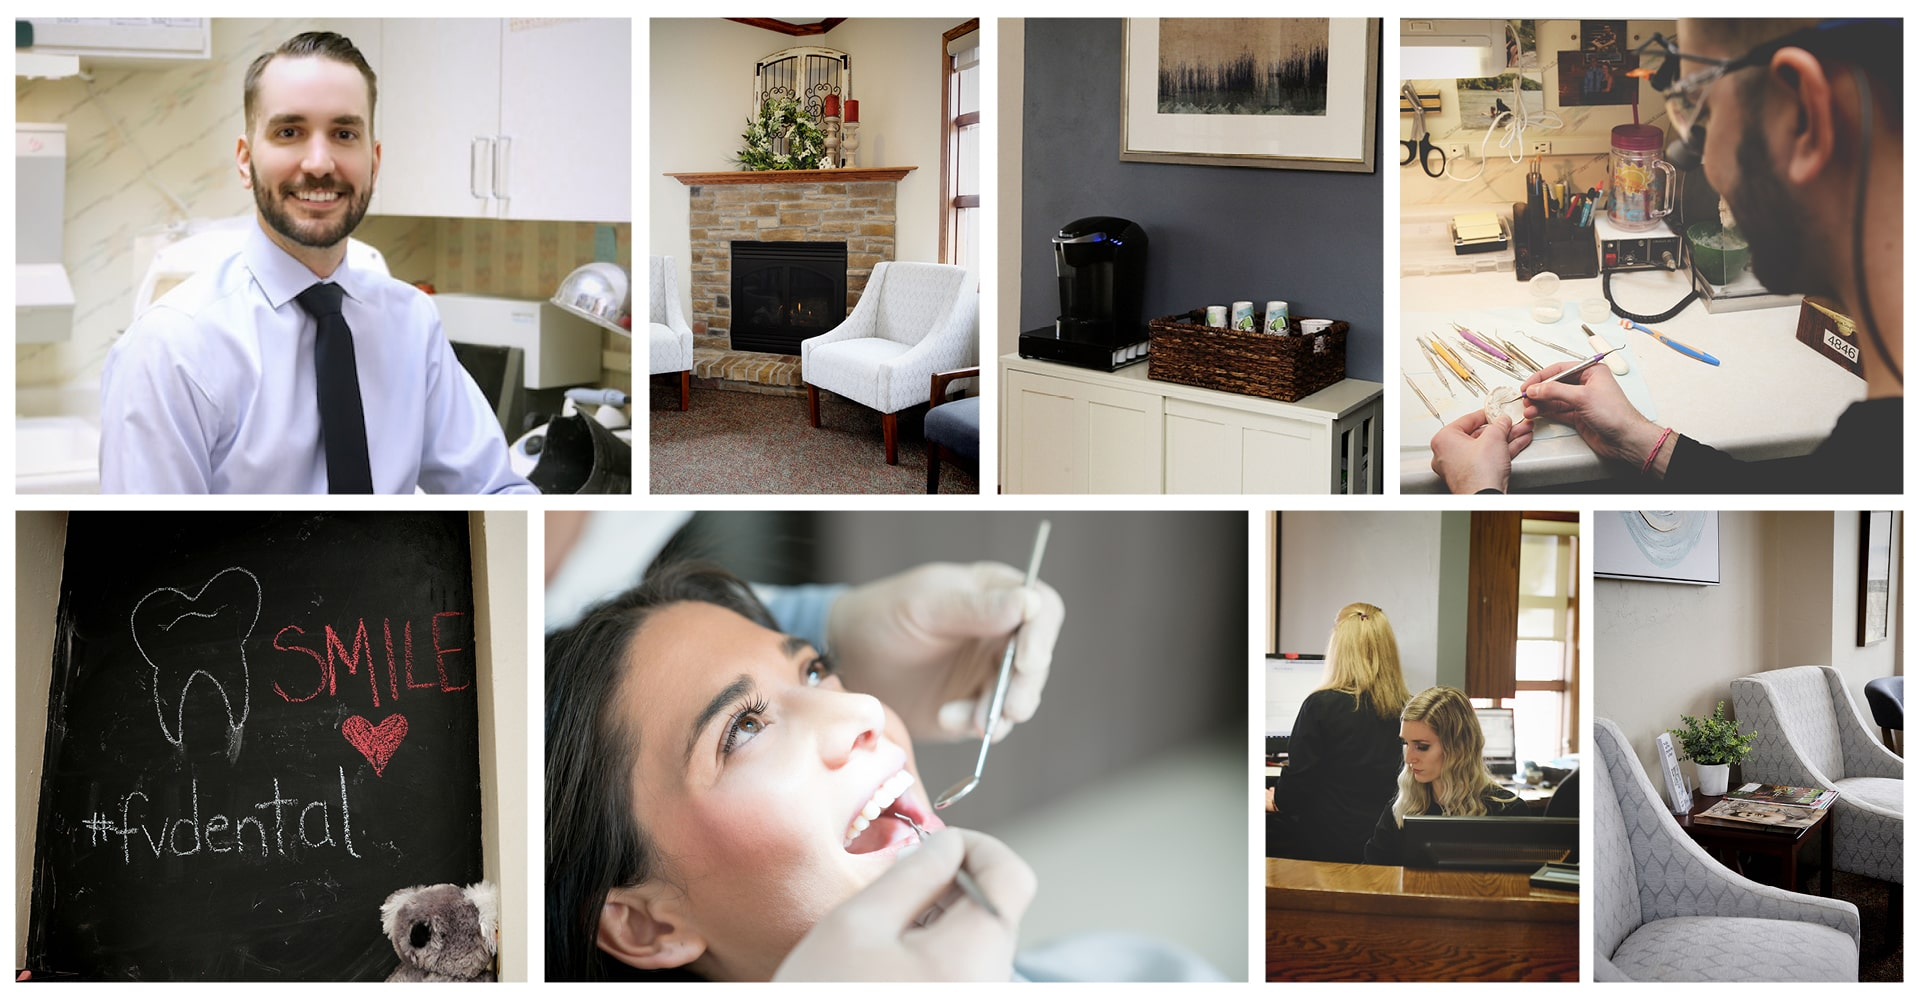 Collage of the Fox Valley Dental staff and practices